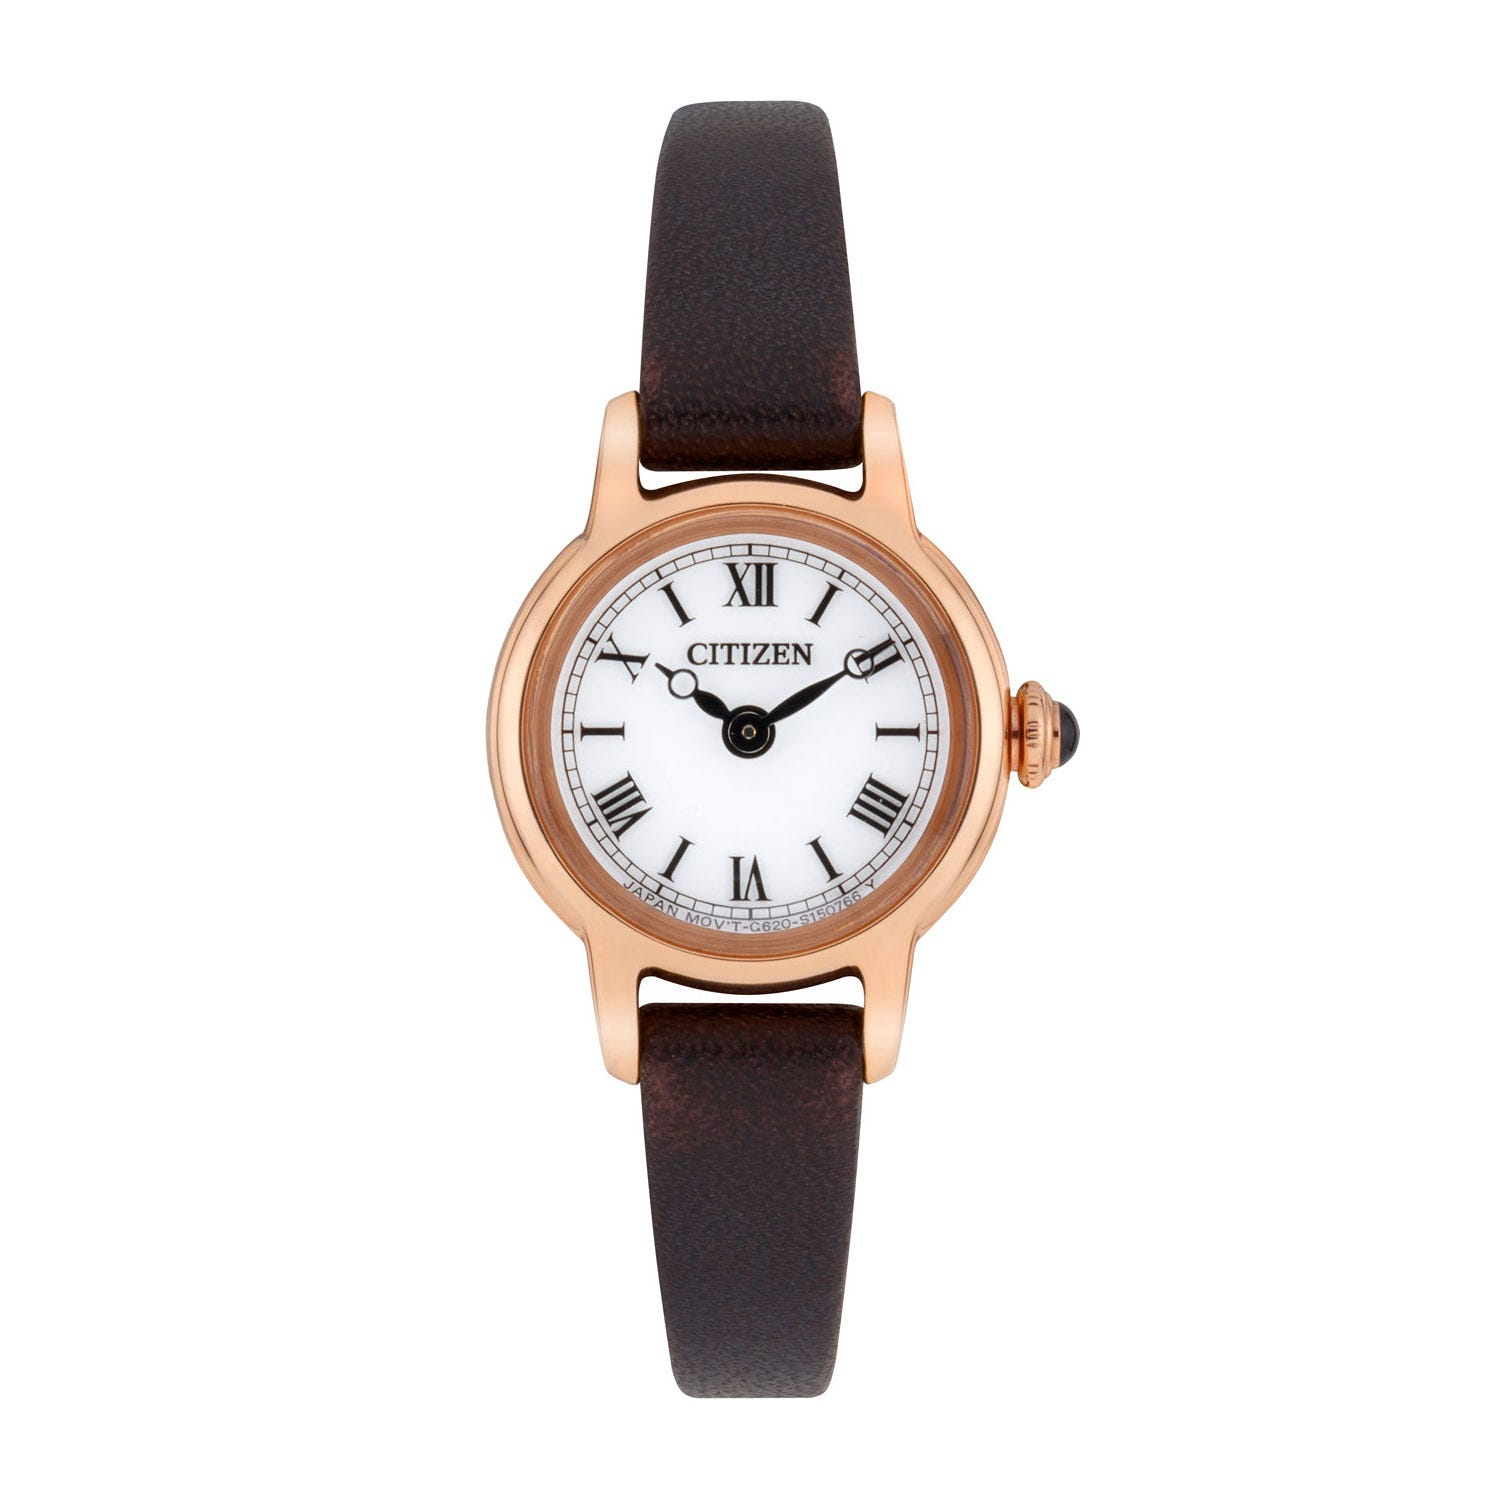 Citizen Eco-Drive Elegance Brown Leather 20mm Ladies' Watch